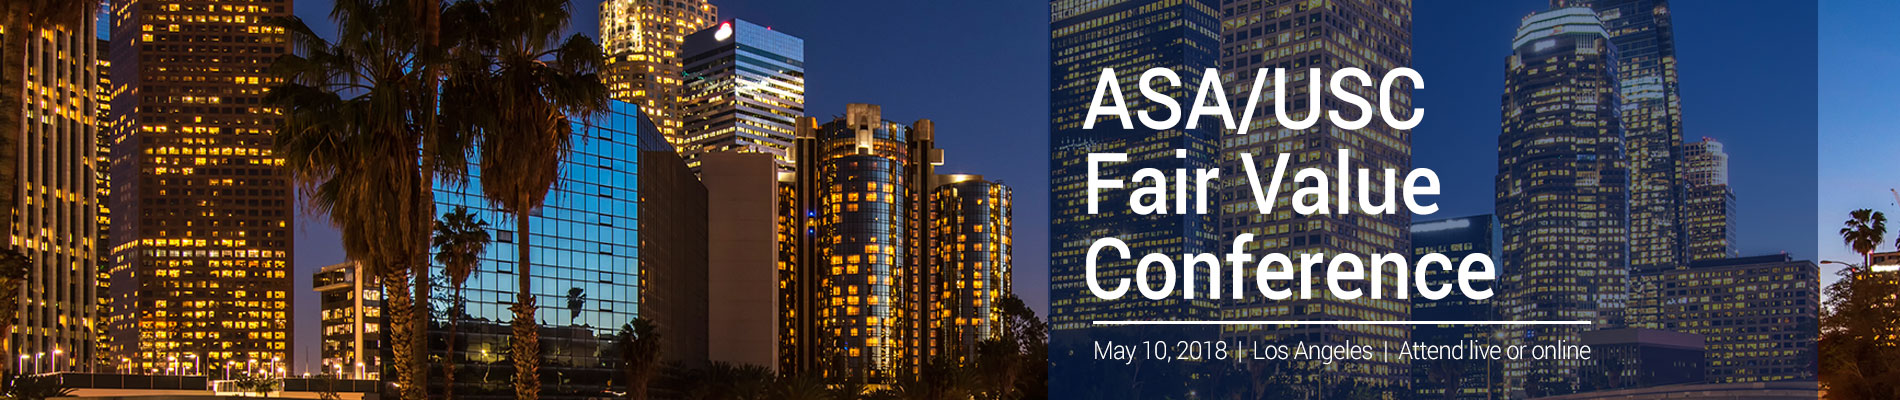 ASA/USC 13th Annual Fair Value Conference